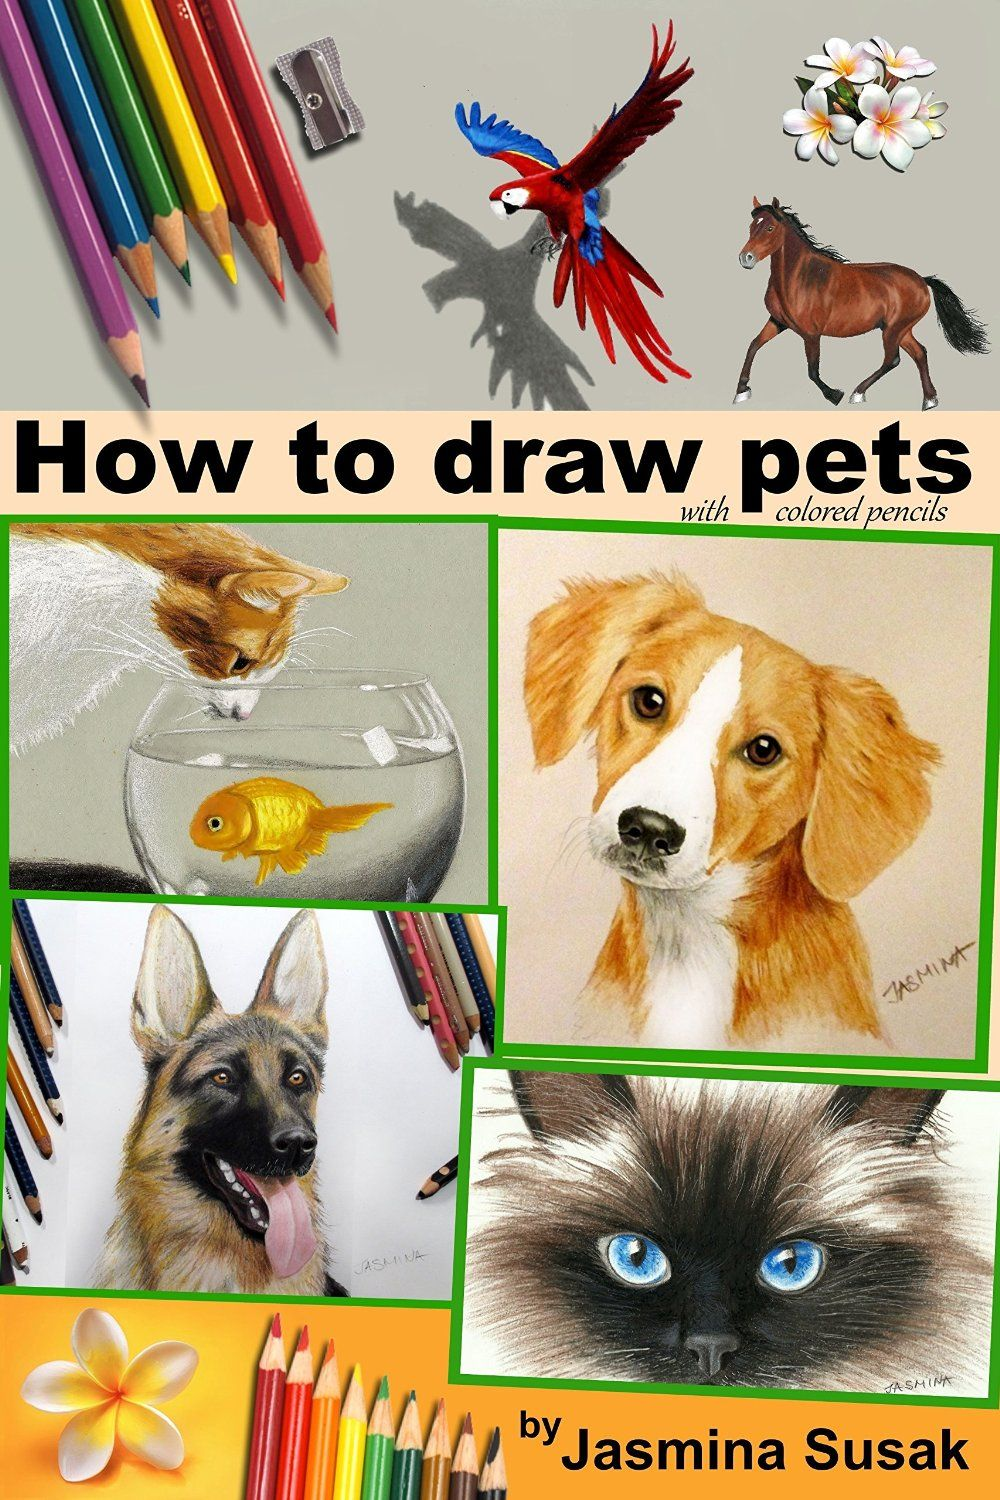 How To Draw Pets PDF Horse drawings, Pencil drawings